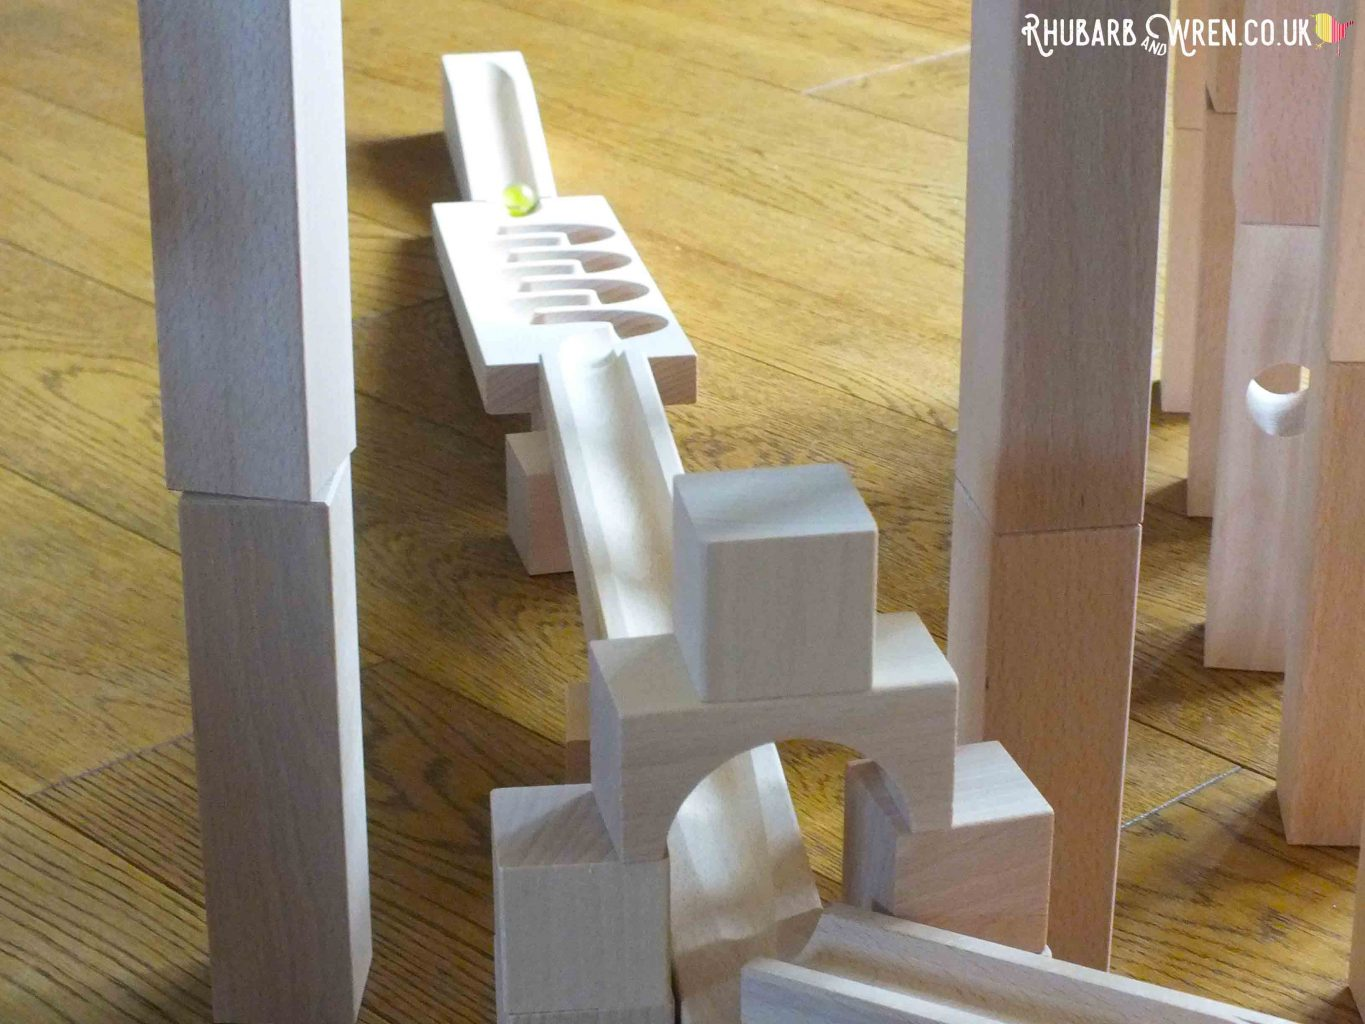 HABA wooden marble run track set up